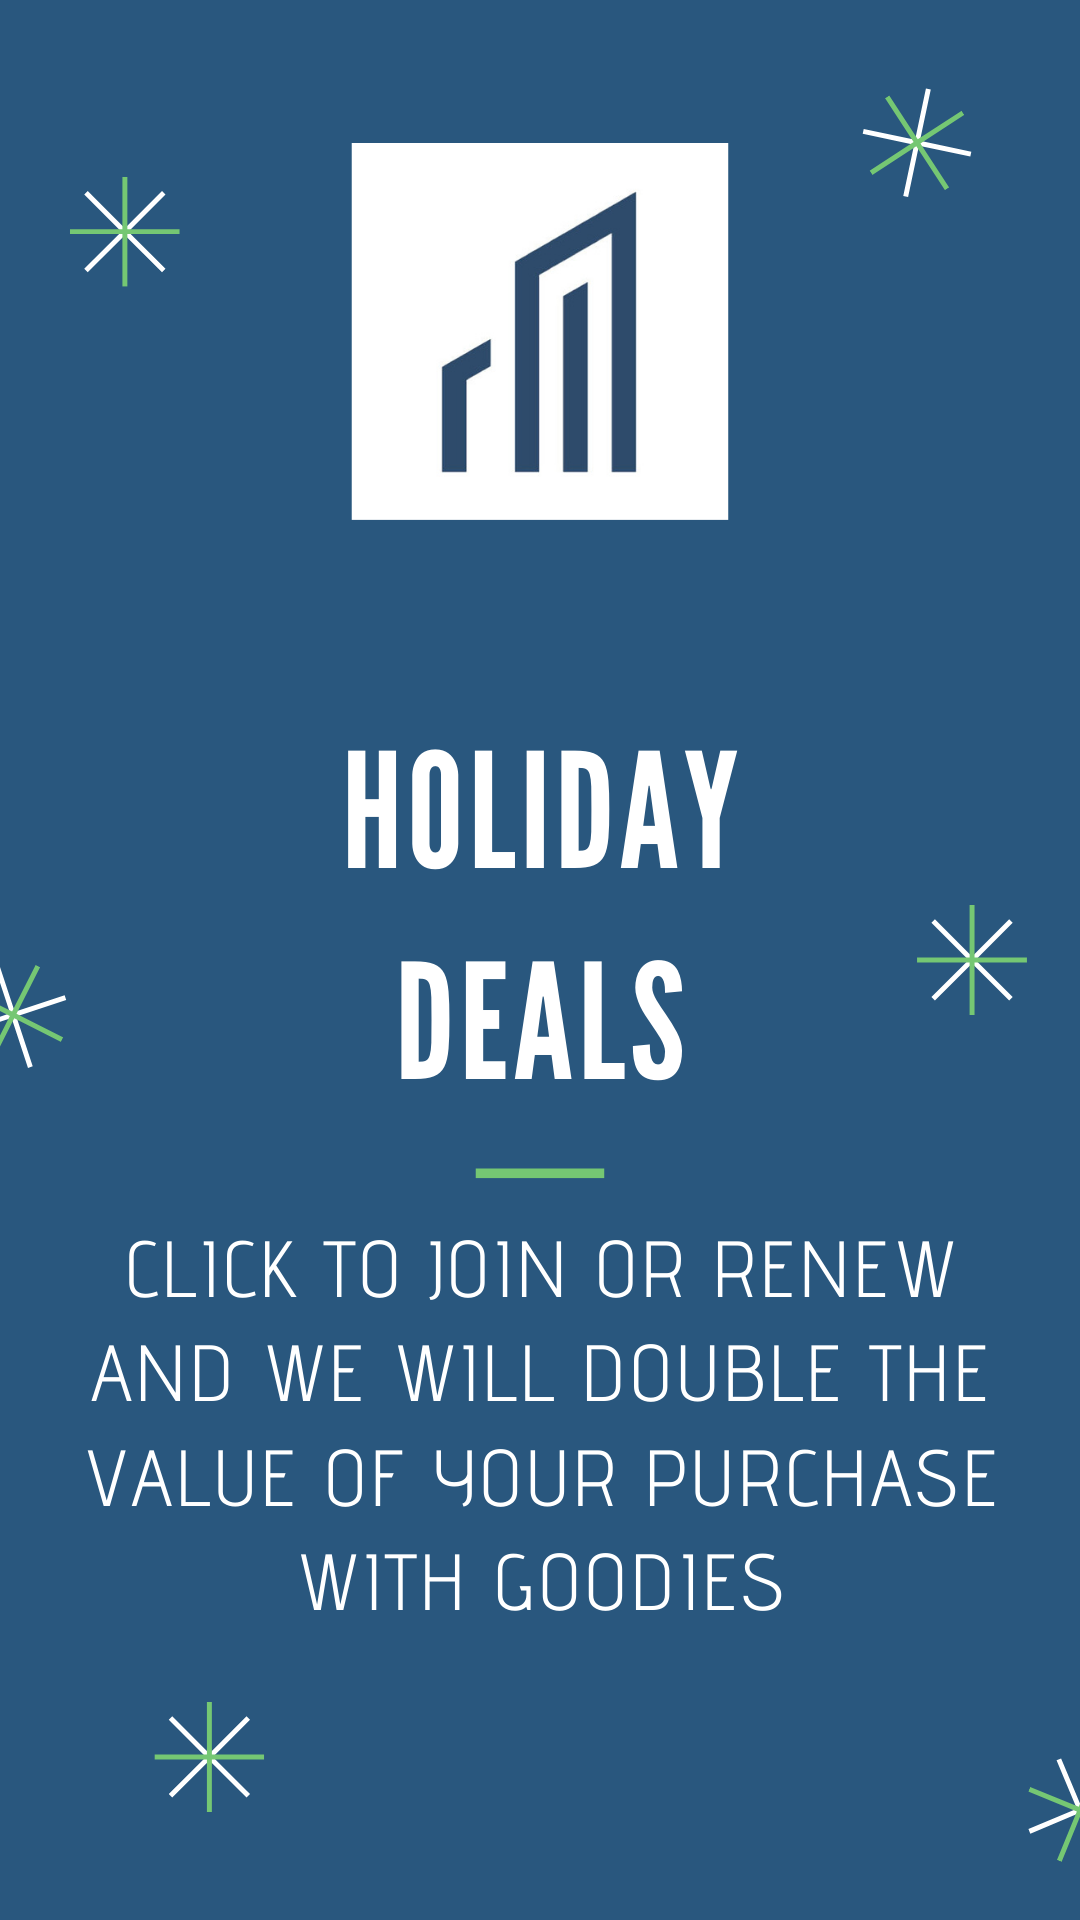 Holiday deal from QuantumListing